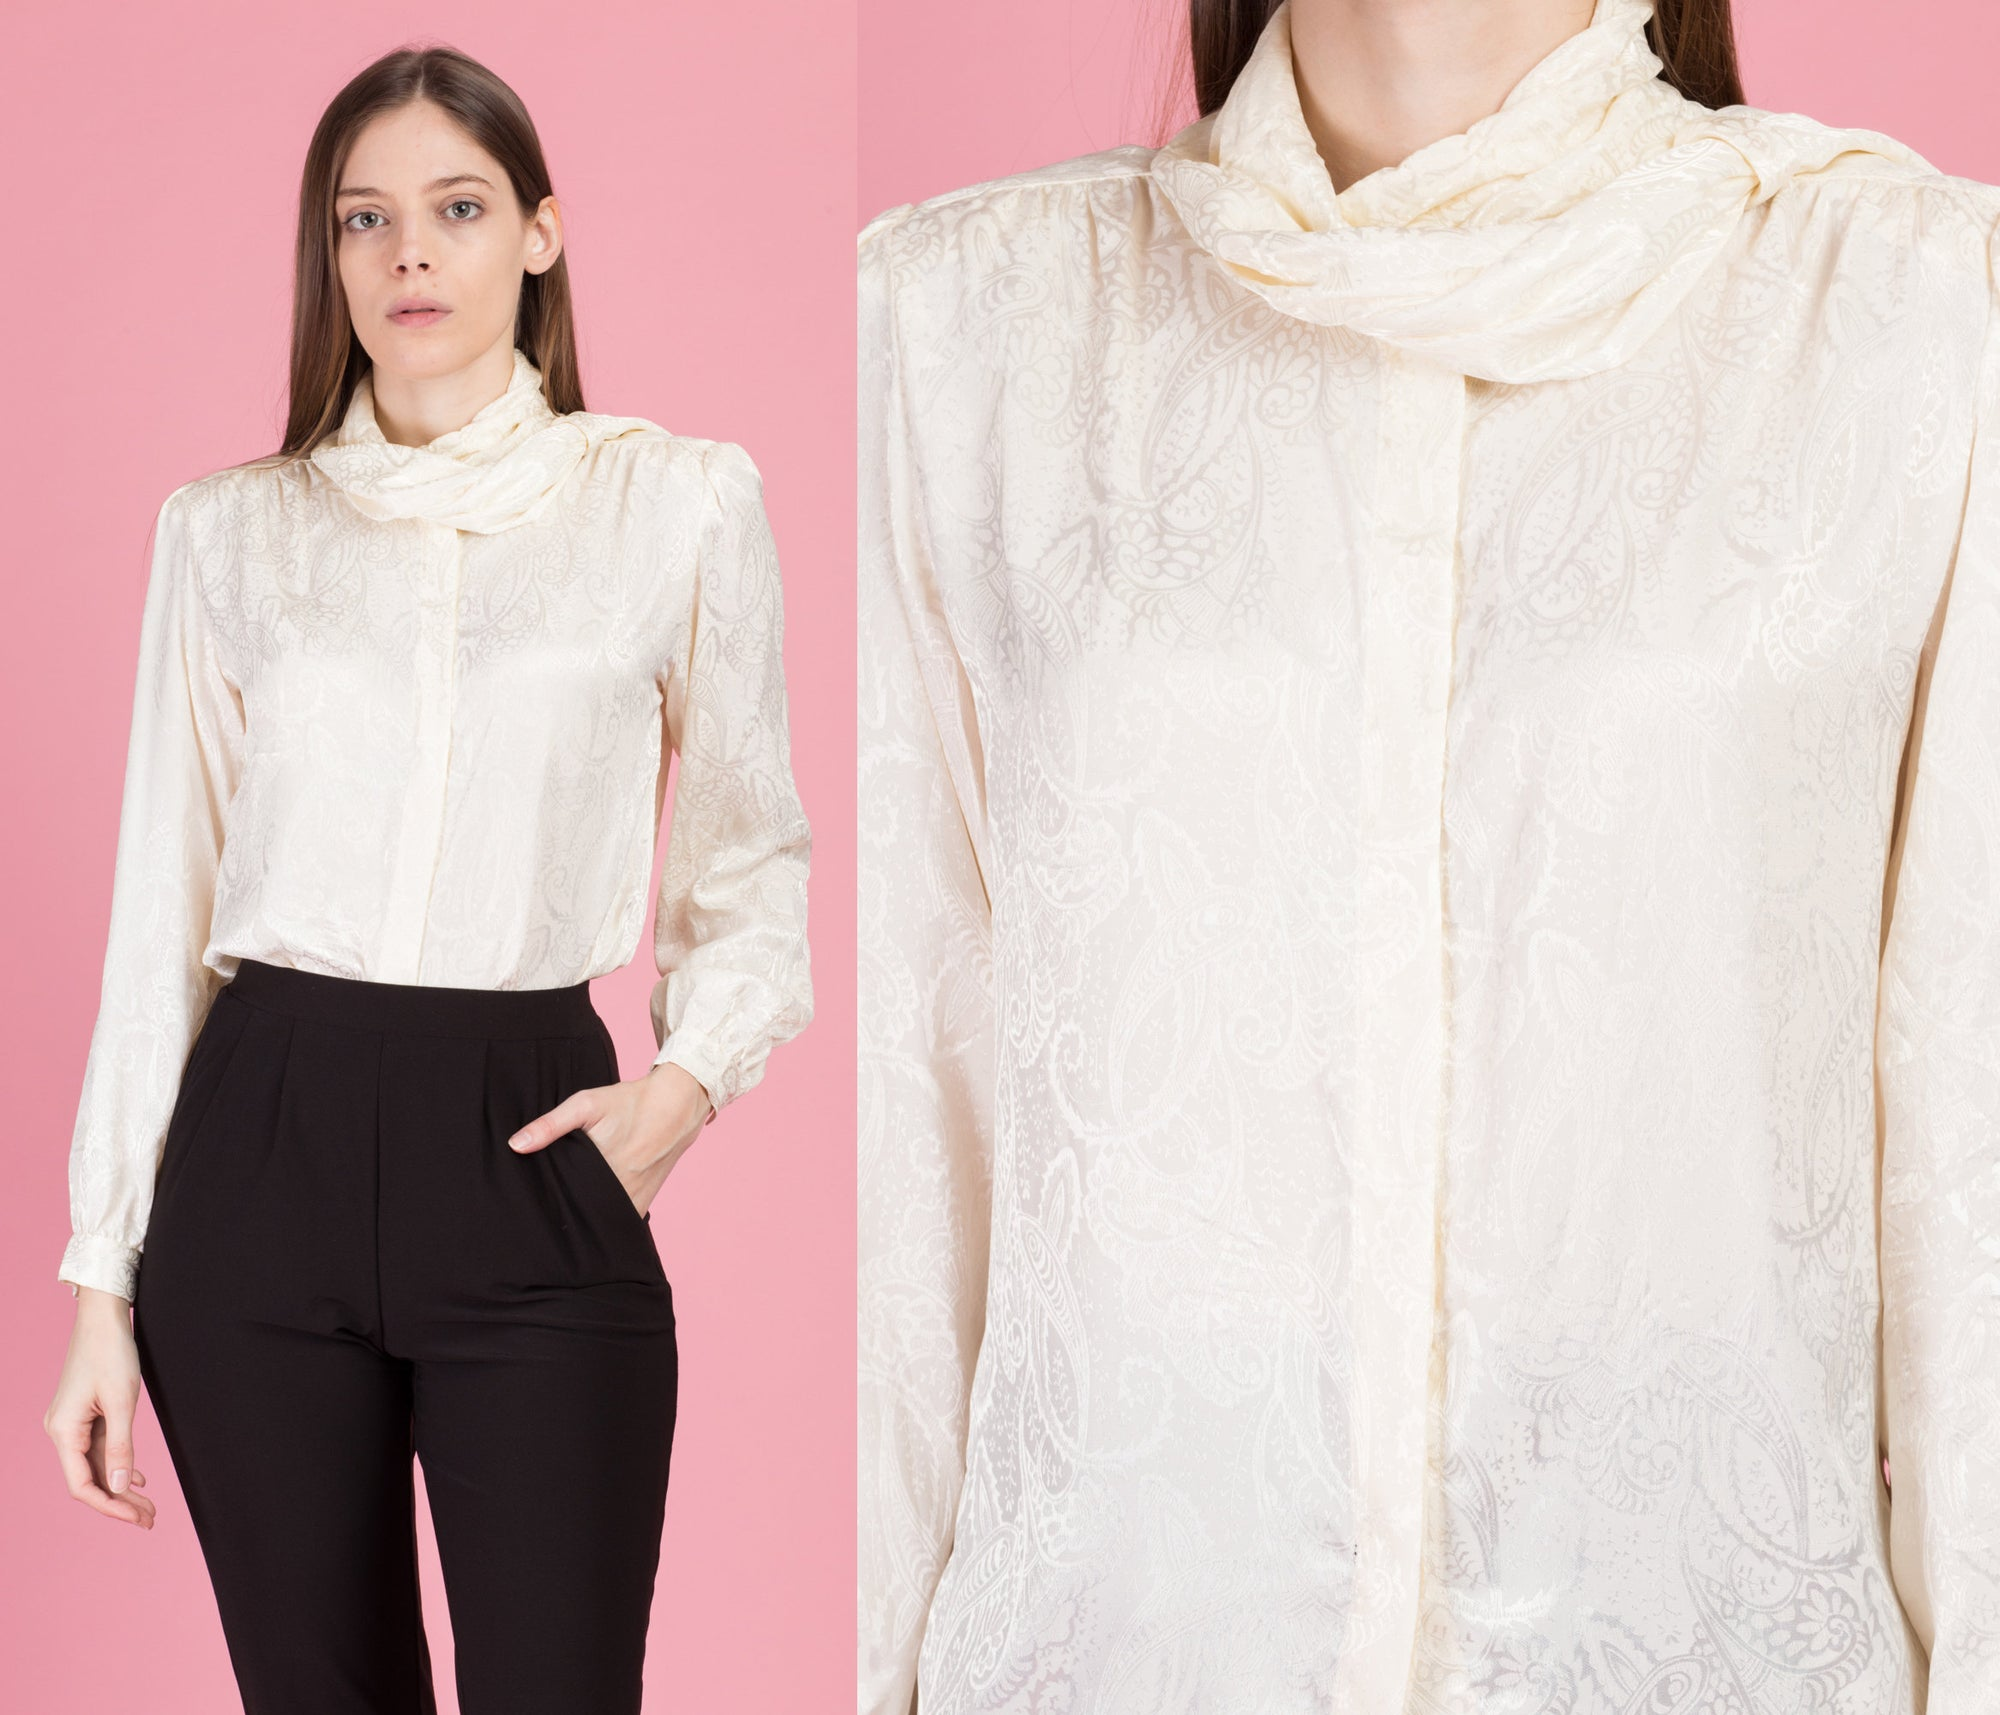 80s Ivory Jacquard Satin Blouse - Medium